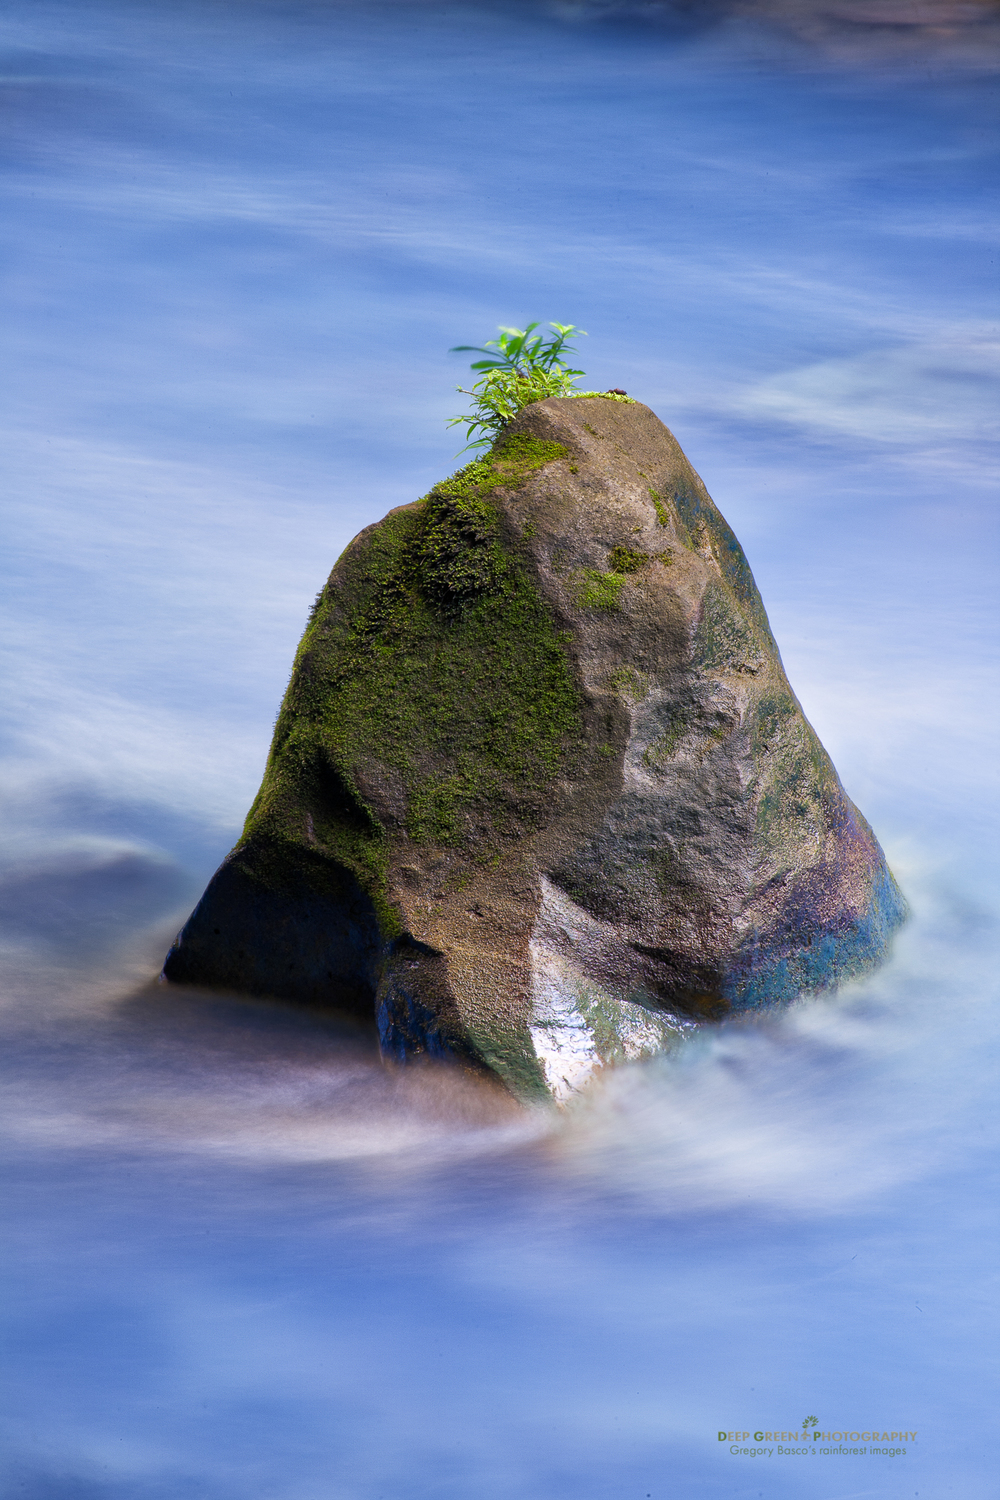 The Rio Celeste in Costa Rica's Tenorio Volcano National Park is one of my favorite destinations in the country for landscape photography. Nonetheless, one of my favorite images from the area is this simple composition of a rock, a shrub sapling, and the otherworldly blue water of the river, which results from suspended silica colloids, probably of volcanic origin. A slow shutter speed and polarizing filter helped to accentuate the flowing blue water, a nice contrast with the stationary rock.